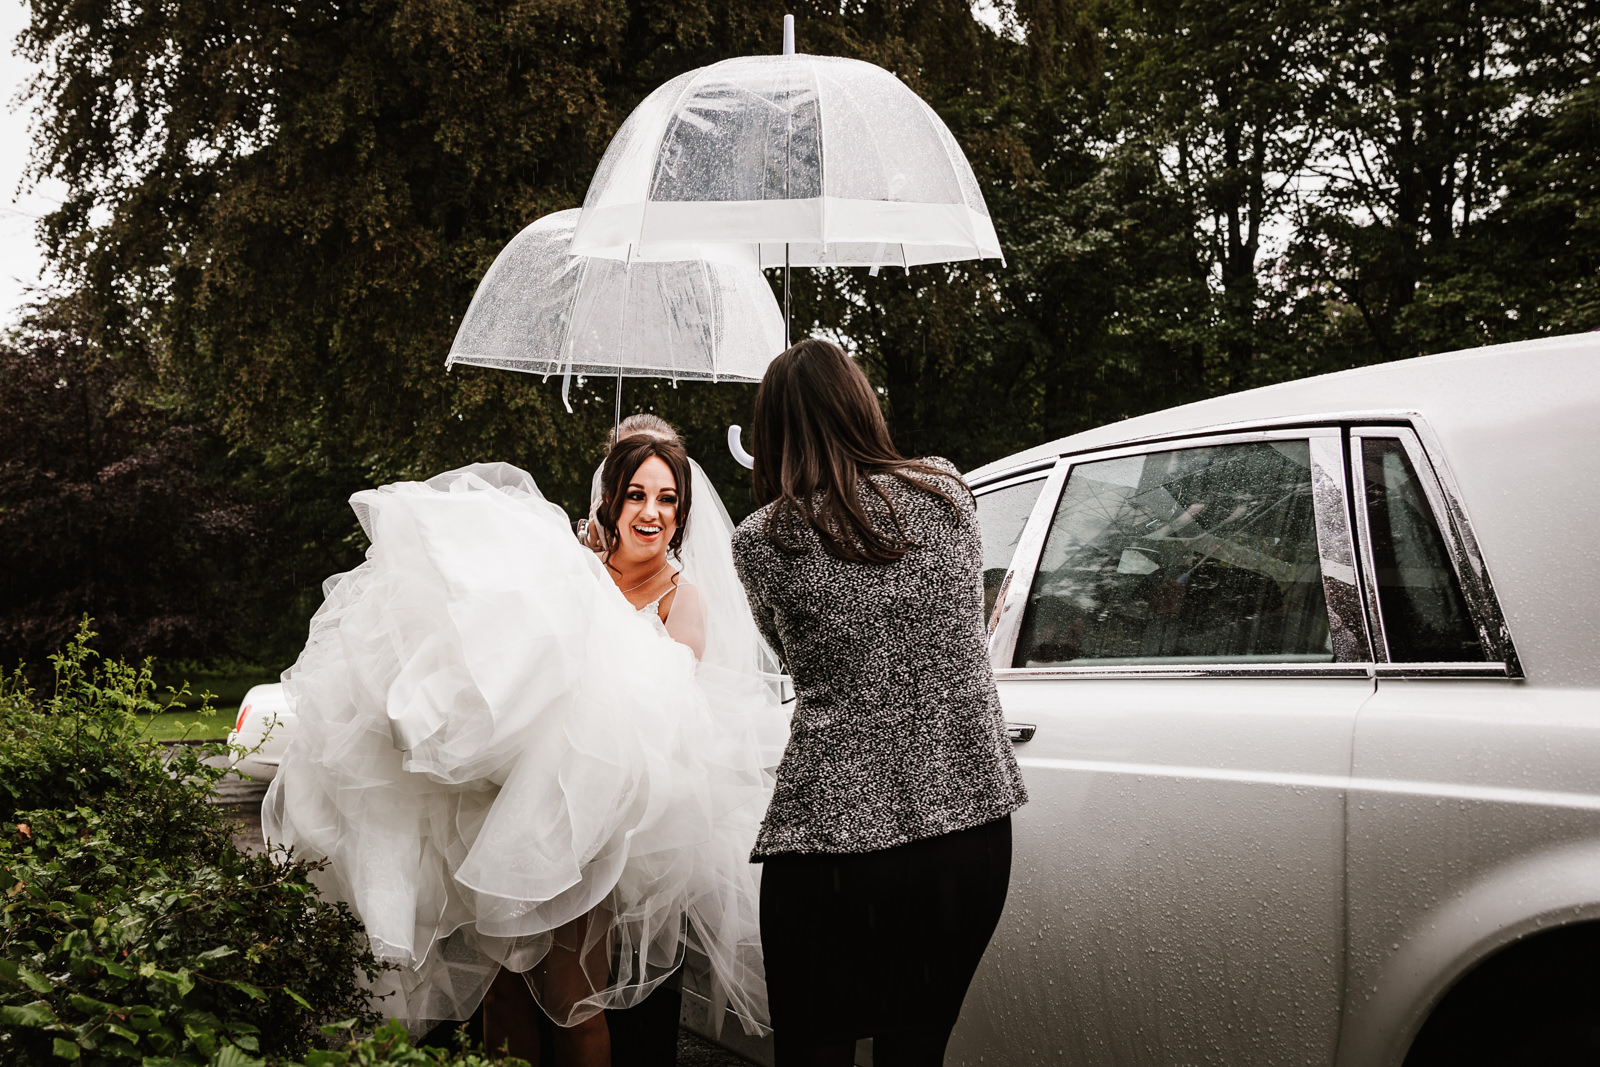 Keeping the bride dry at Rivington hall barn